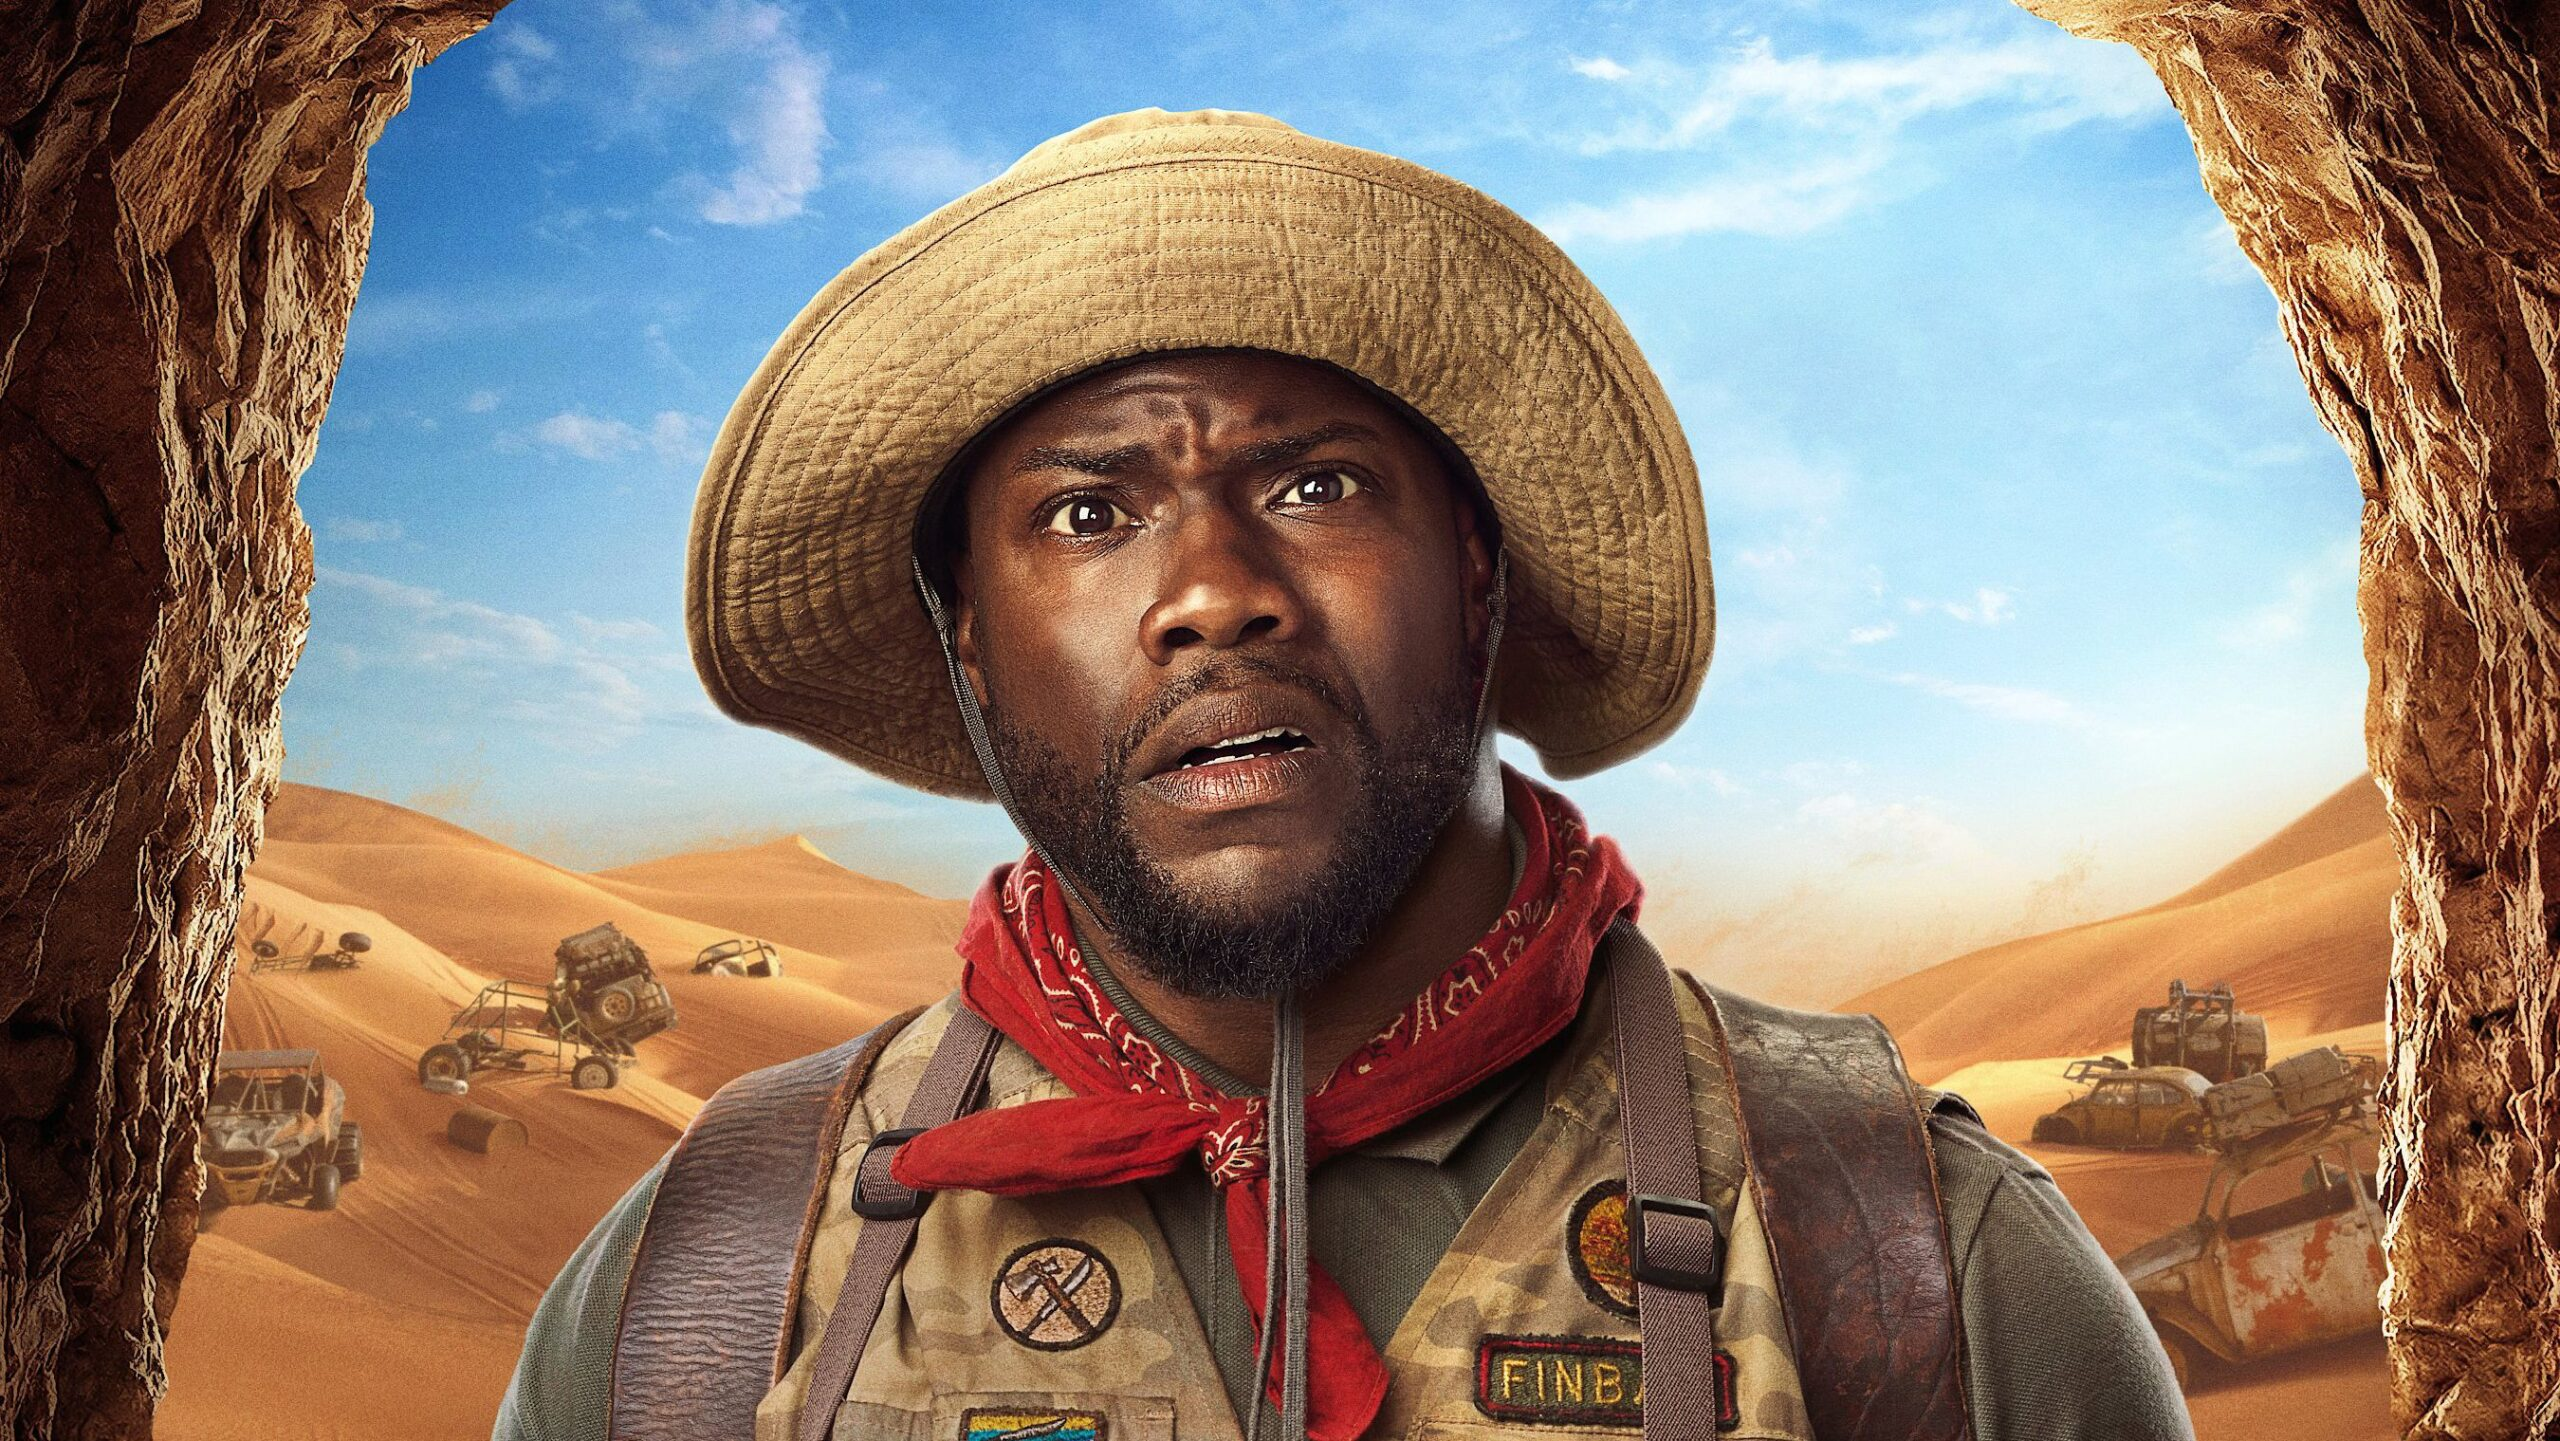 funny kevin hart images